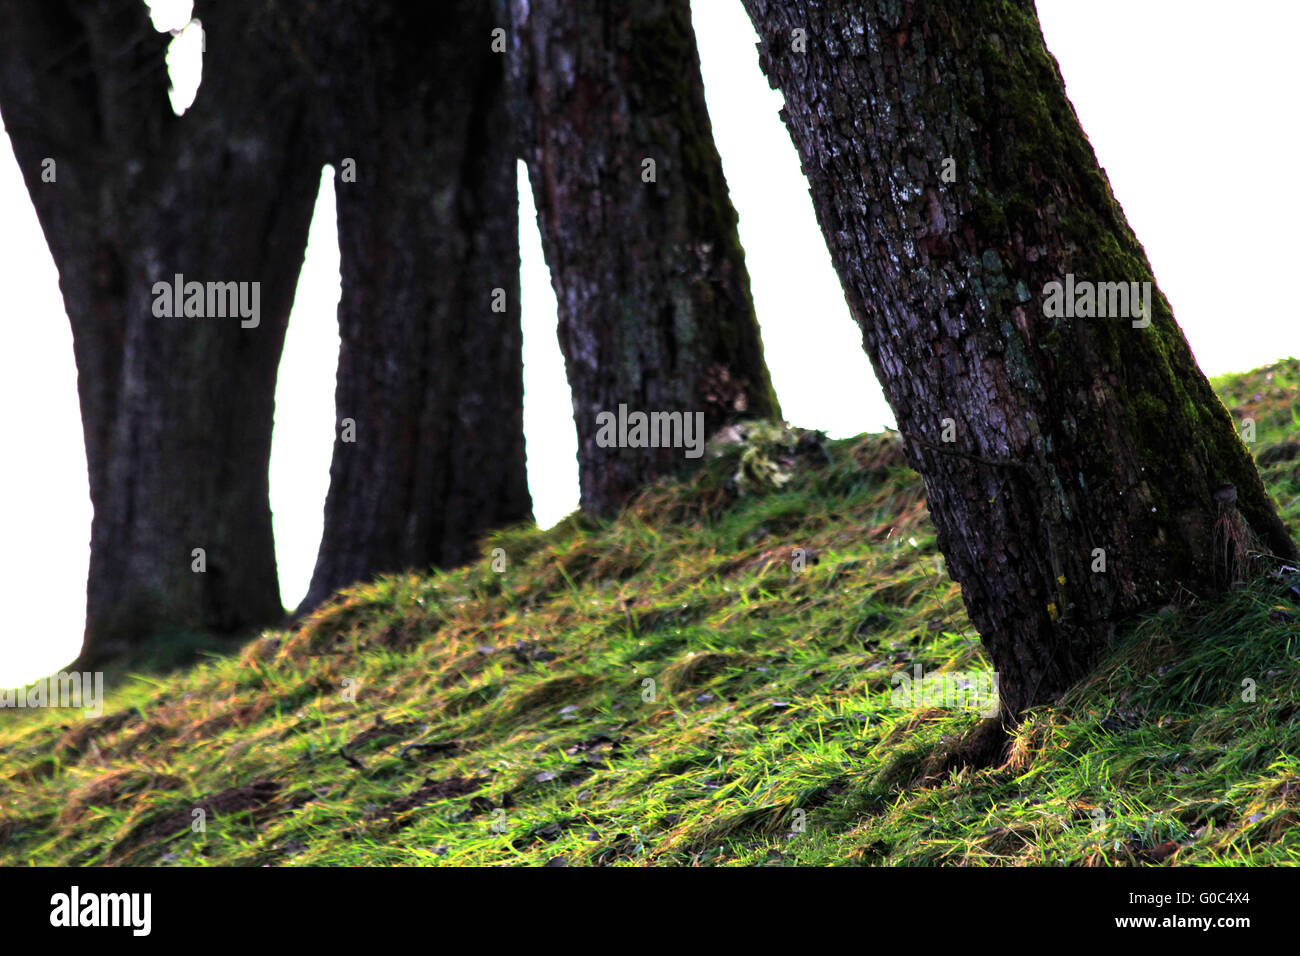 Trunks of Old Fruit Trees - Stock Image